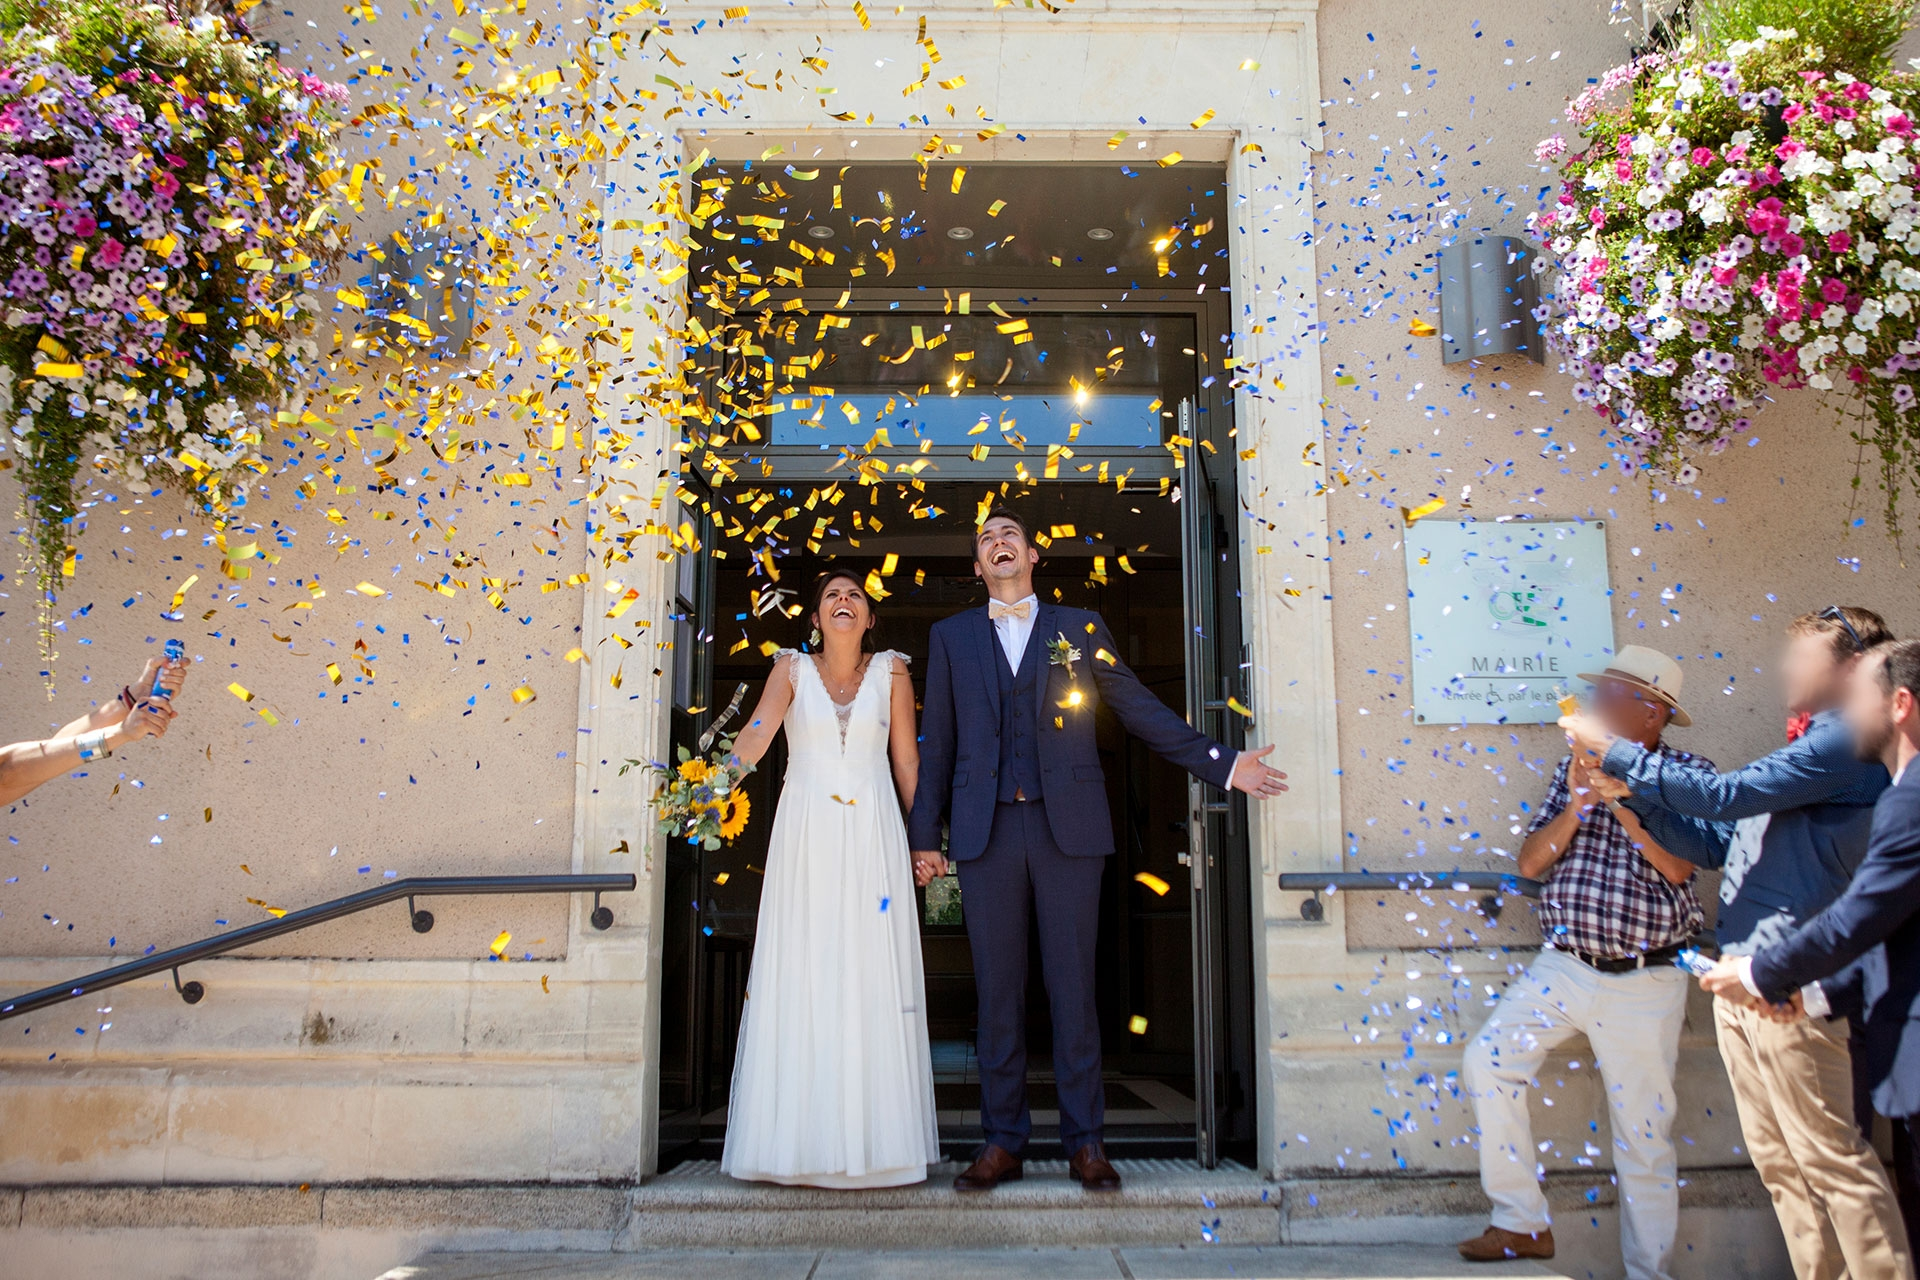 particuliers-evenements-mariage-oui-elise&quentin-26